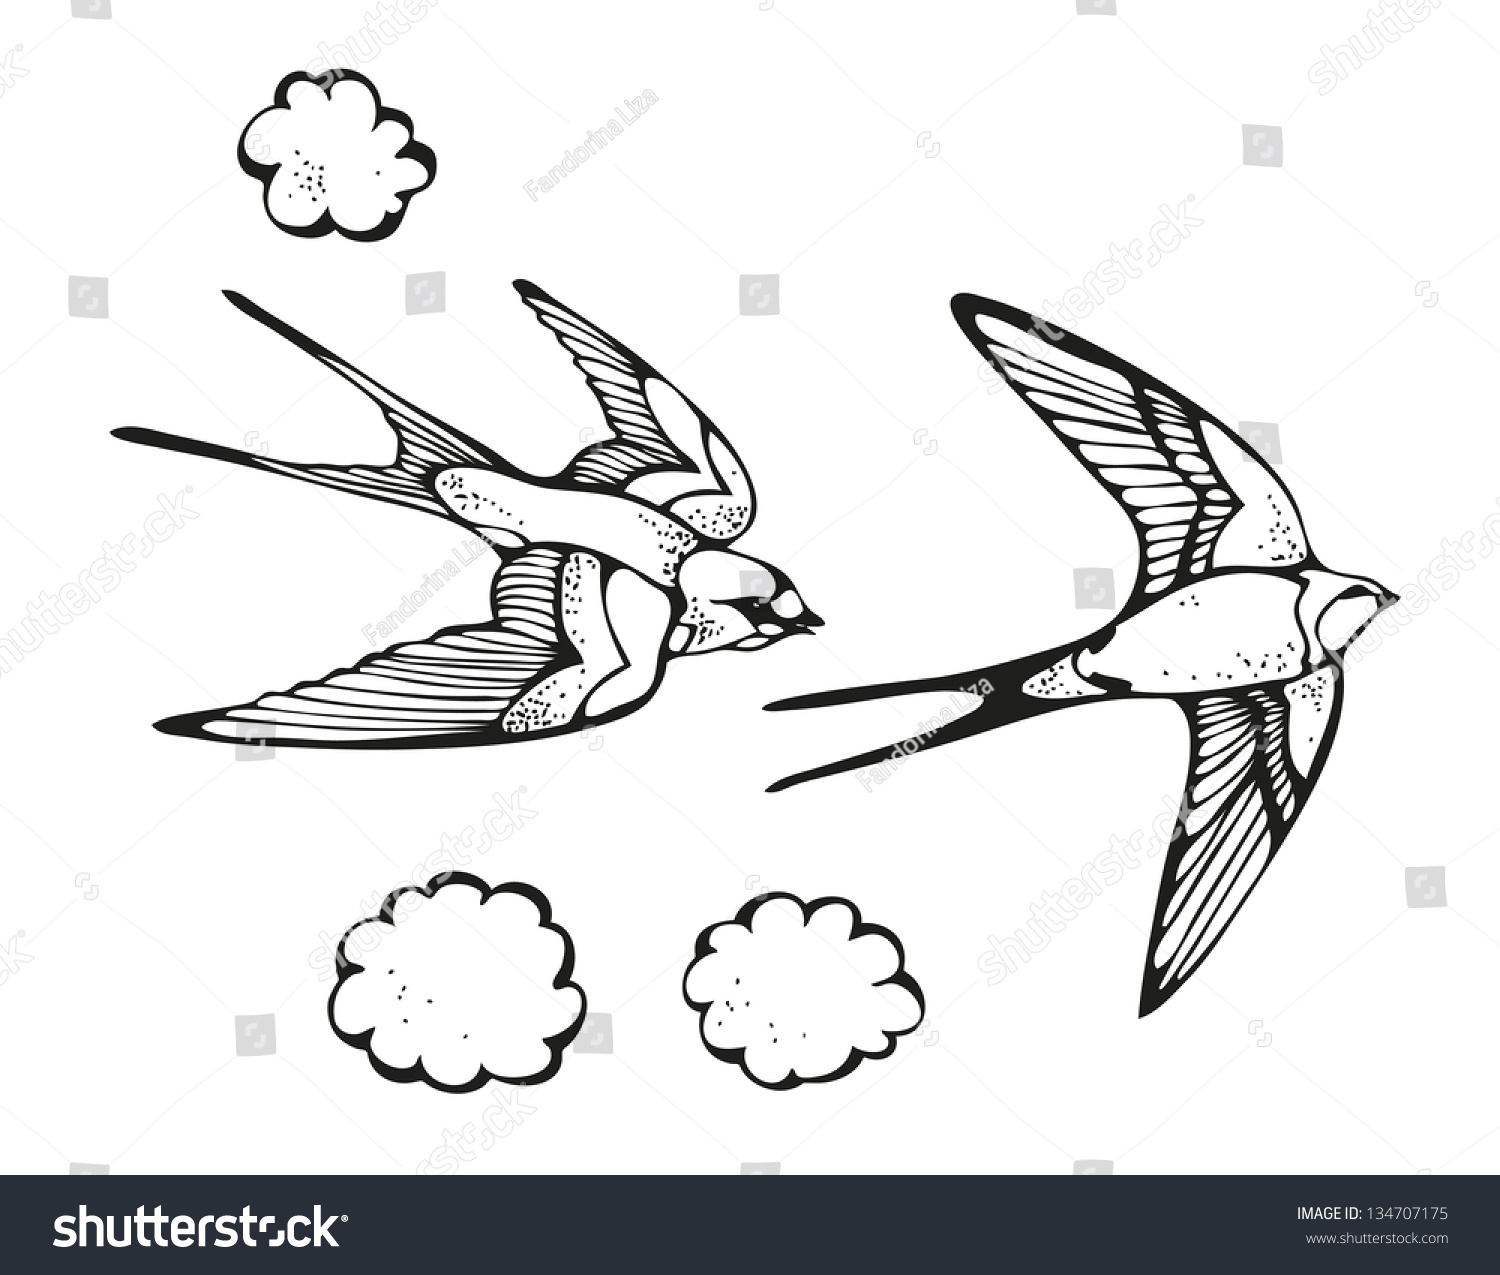 Swallow Drawing Illustration Bird Isolated On Stock Vector ...